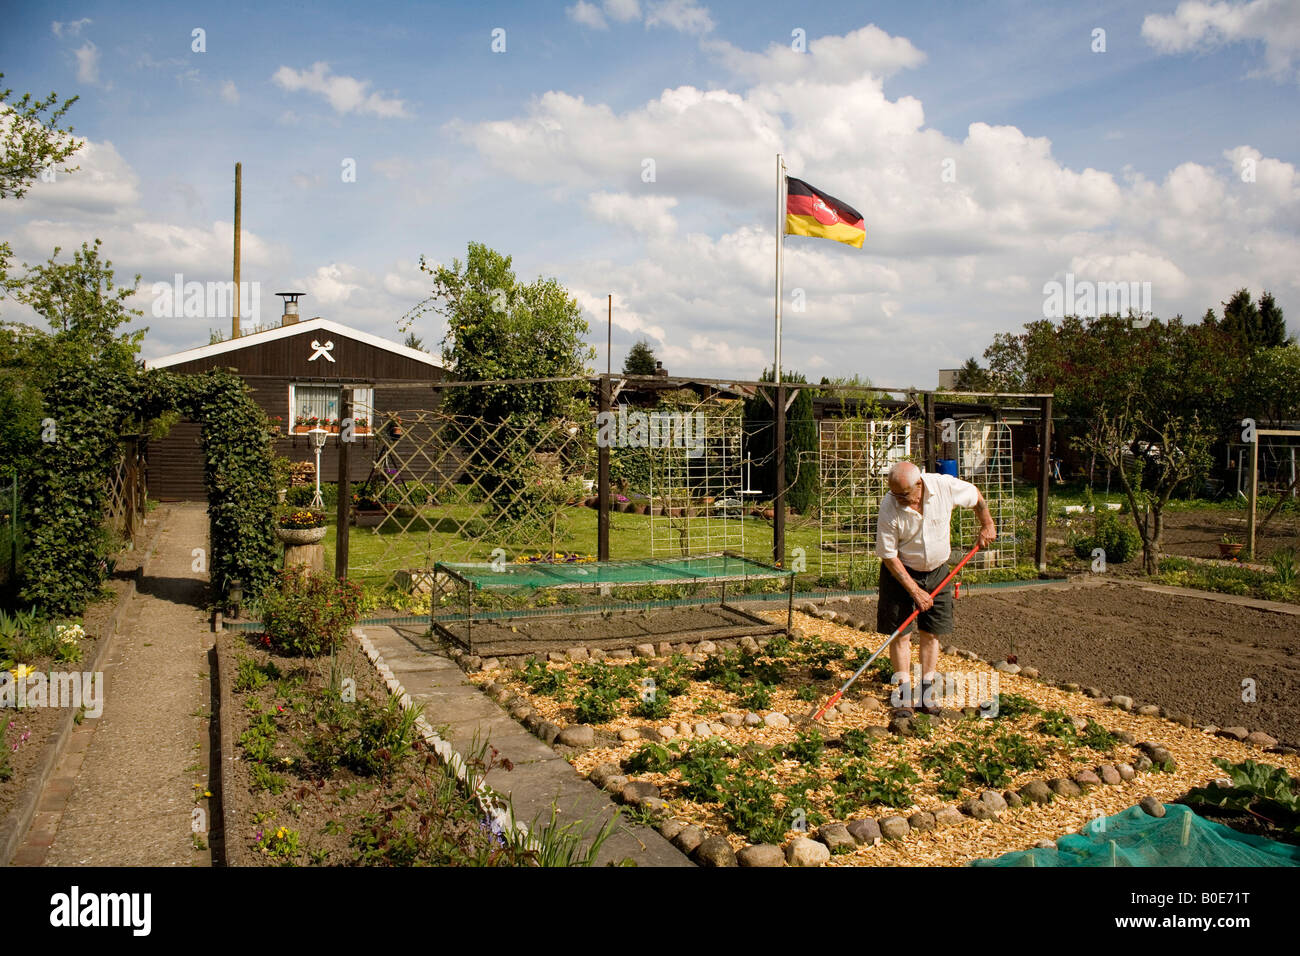 Man working in his allotment garden - Stock Image